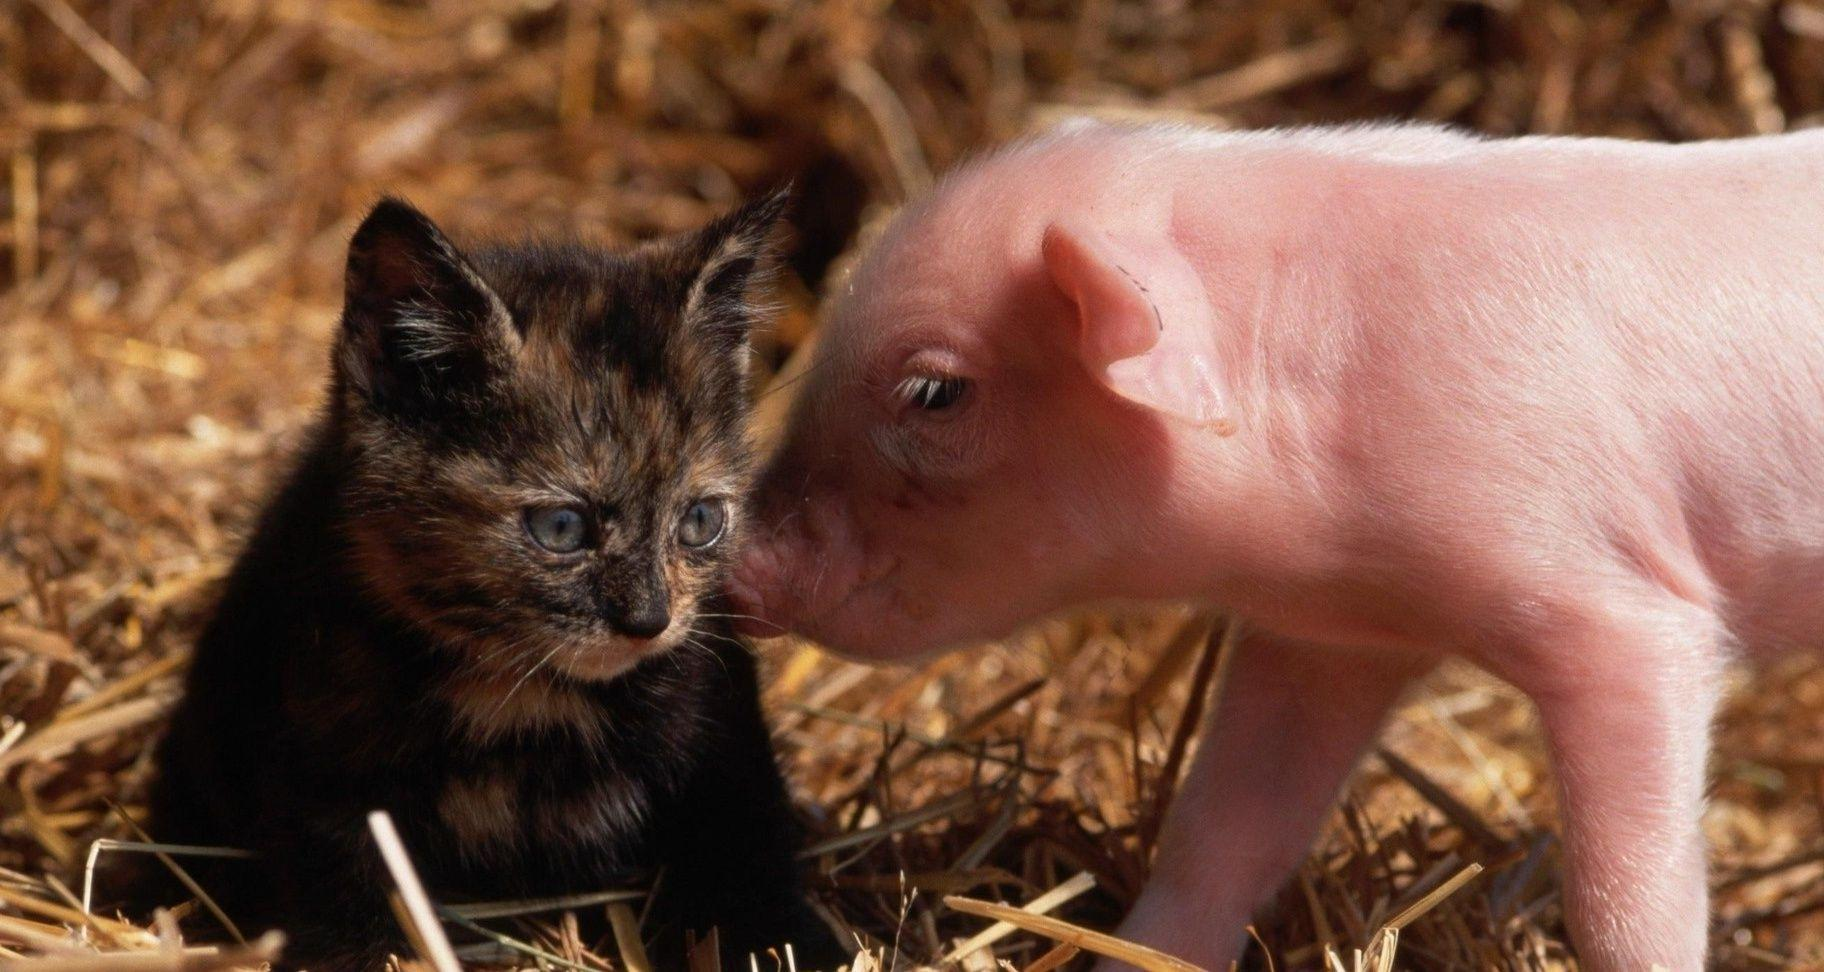 Baby Pigs Wallpapers - Wallpaper Cave